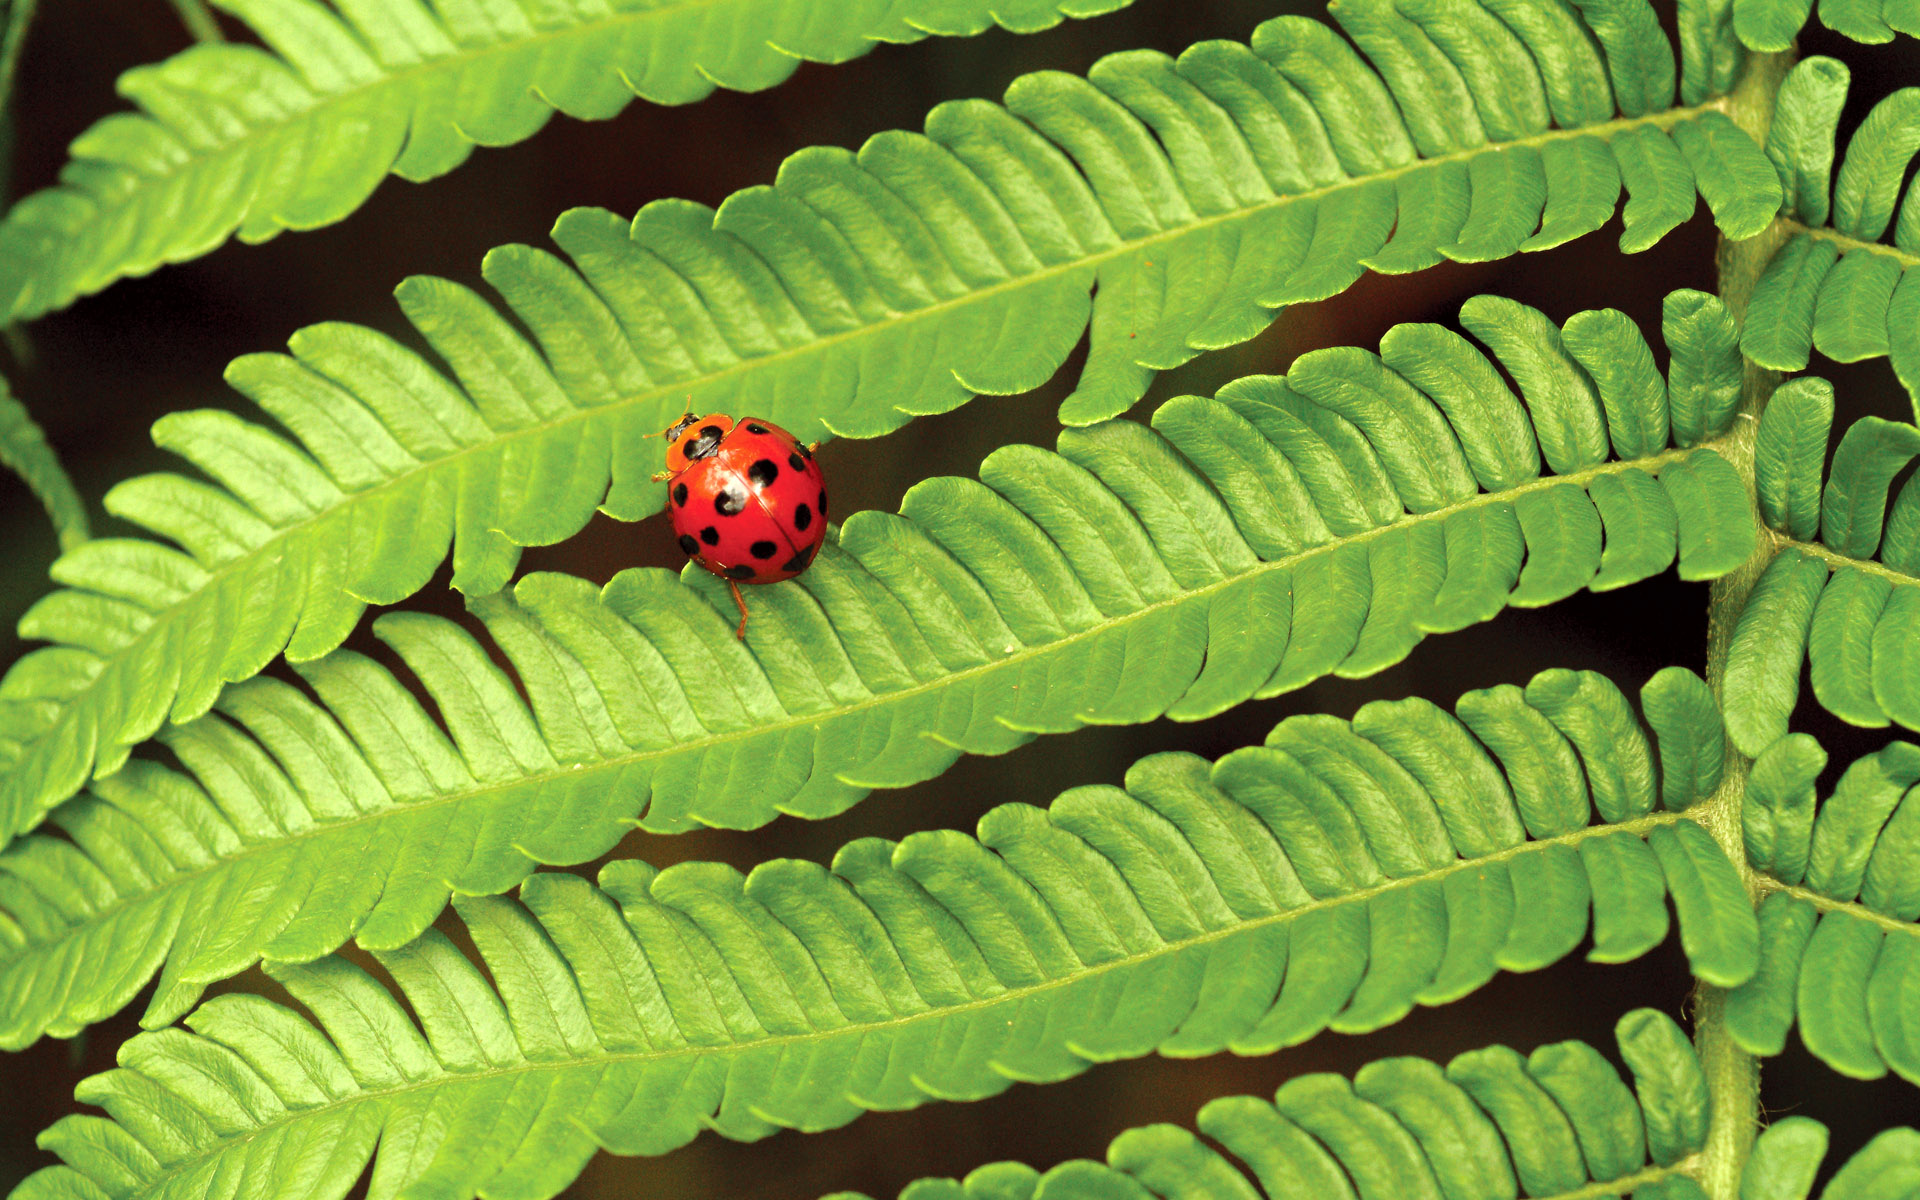 Widescreen insect photo material 1382